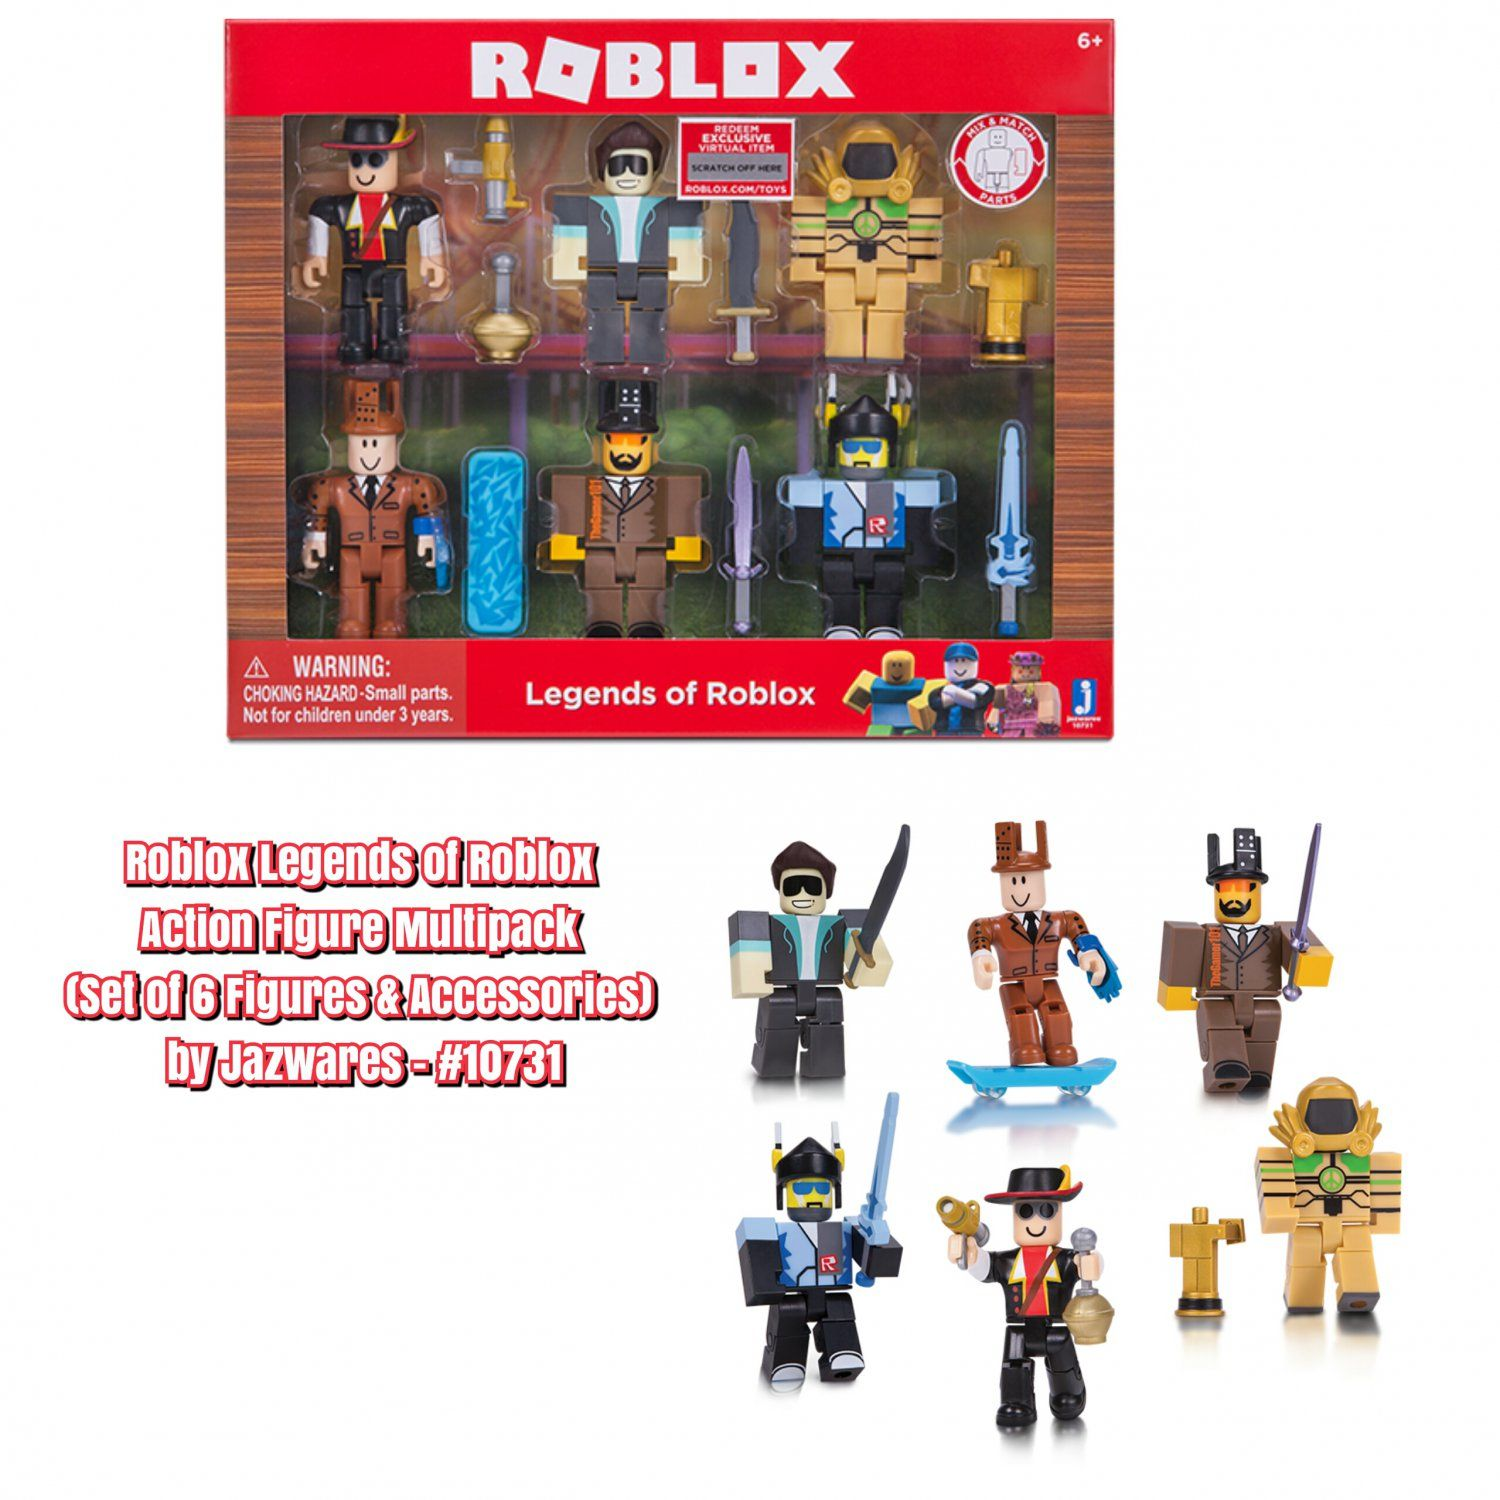 Roblox gear id code list bing images - Roblox Legends Of Roblox Action Figure Multipack Set Of 6 Figures Accessories By